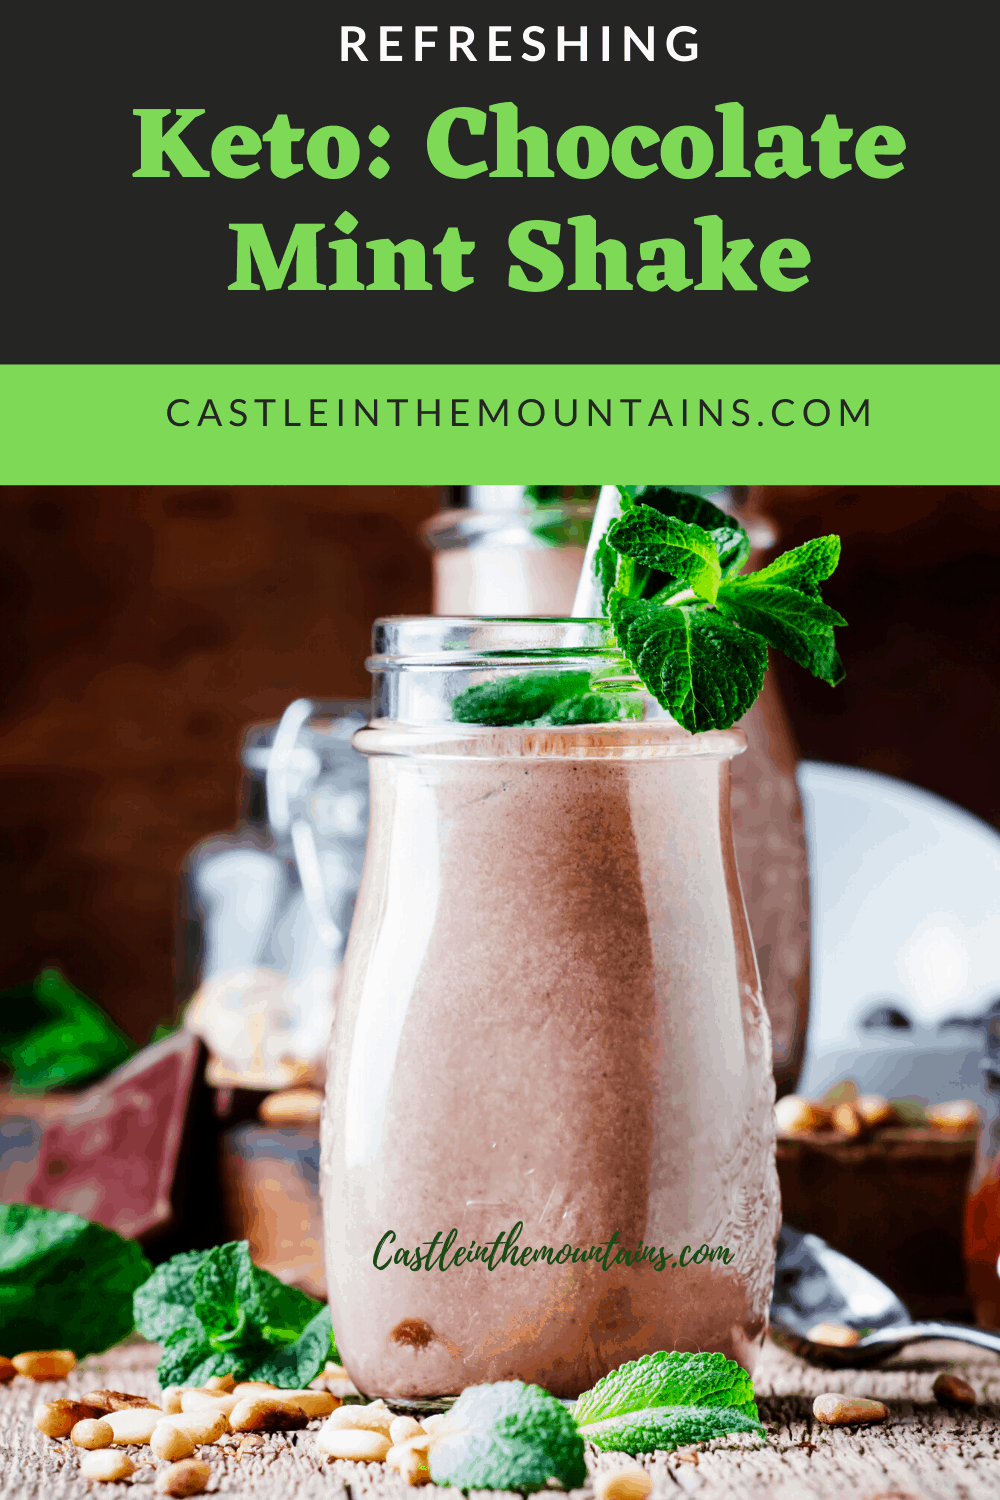 Keto Chocolate Mint Shake